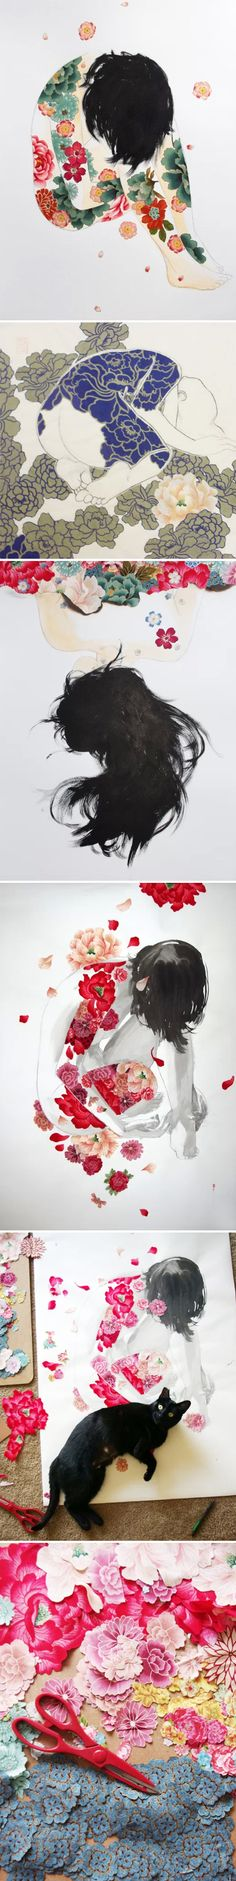 The Jealous Curator » Blog Archive » i'm jealous of stasia burrington